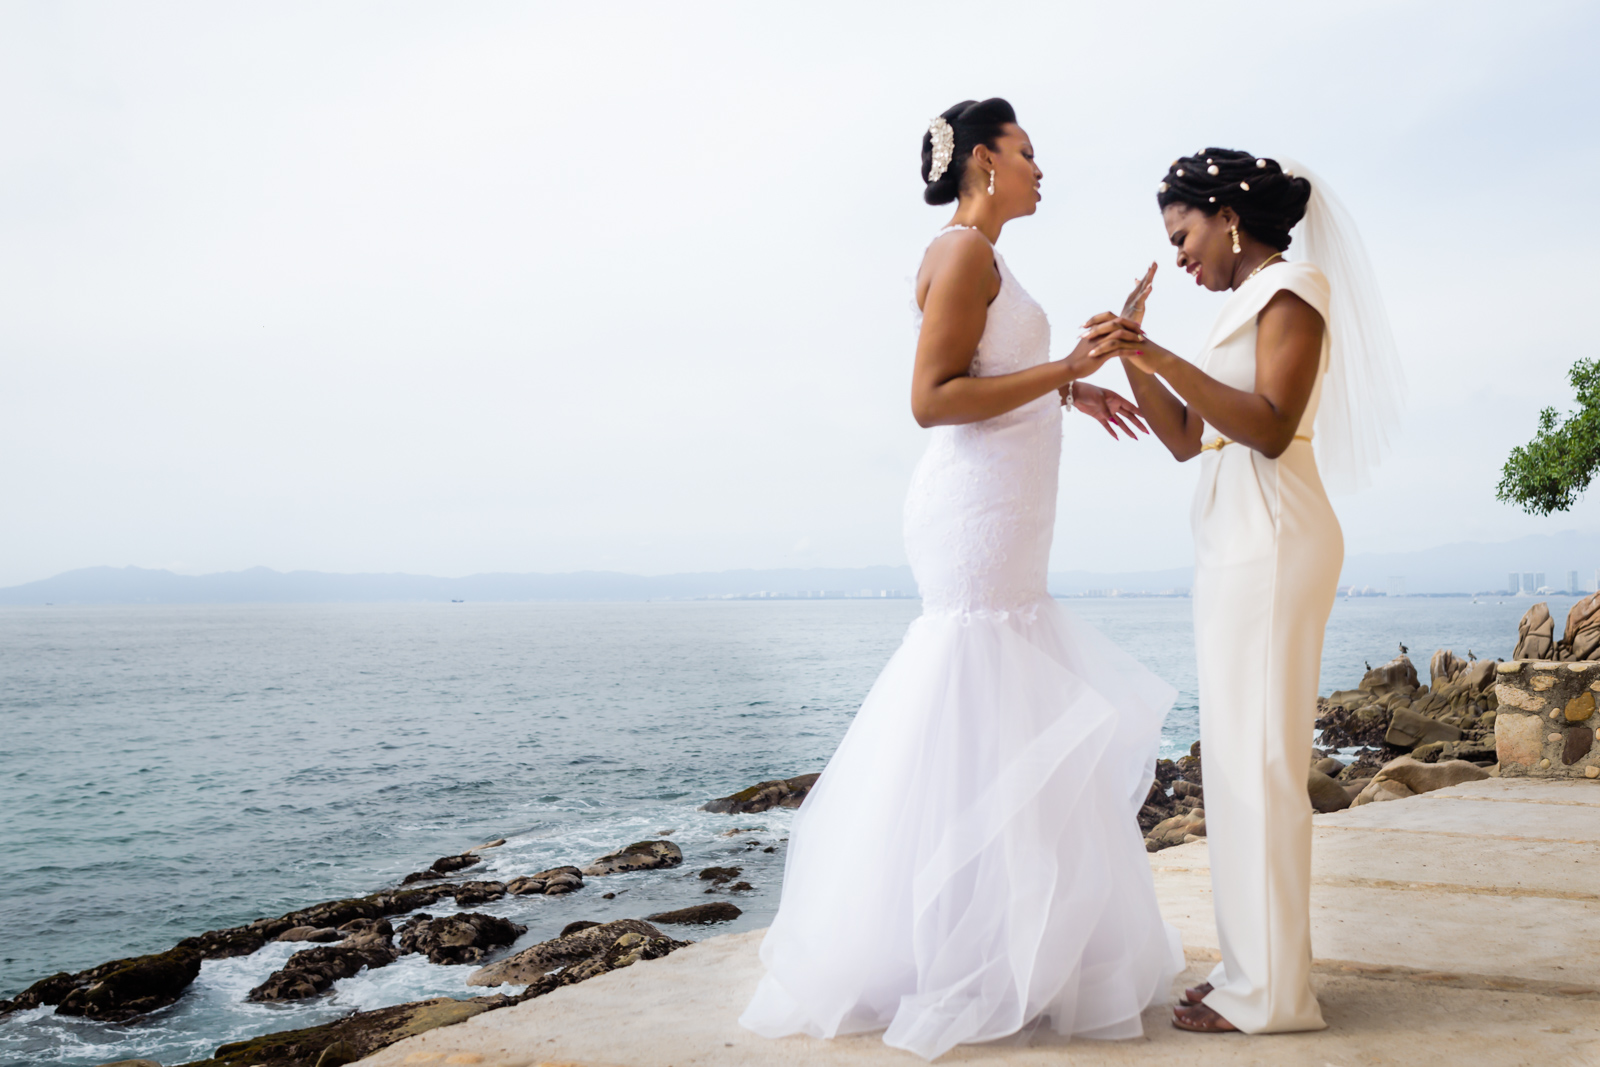 brides first look cry with the ocean in the background